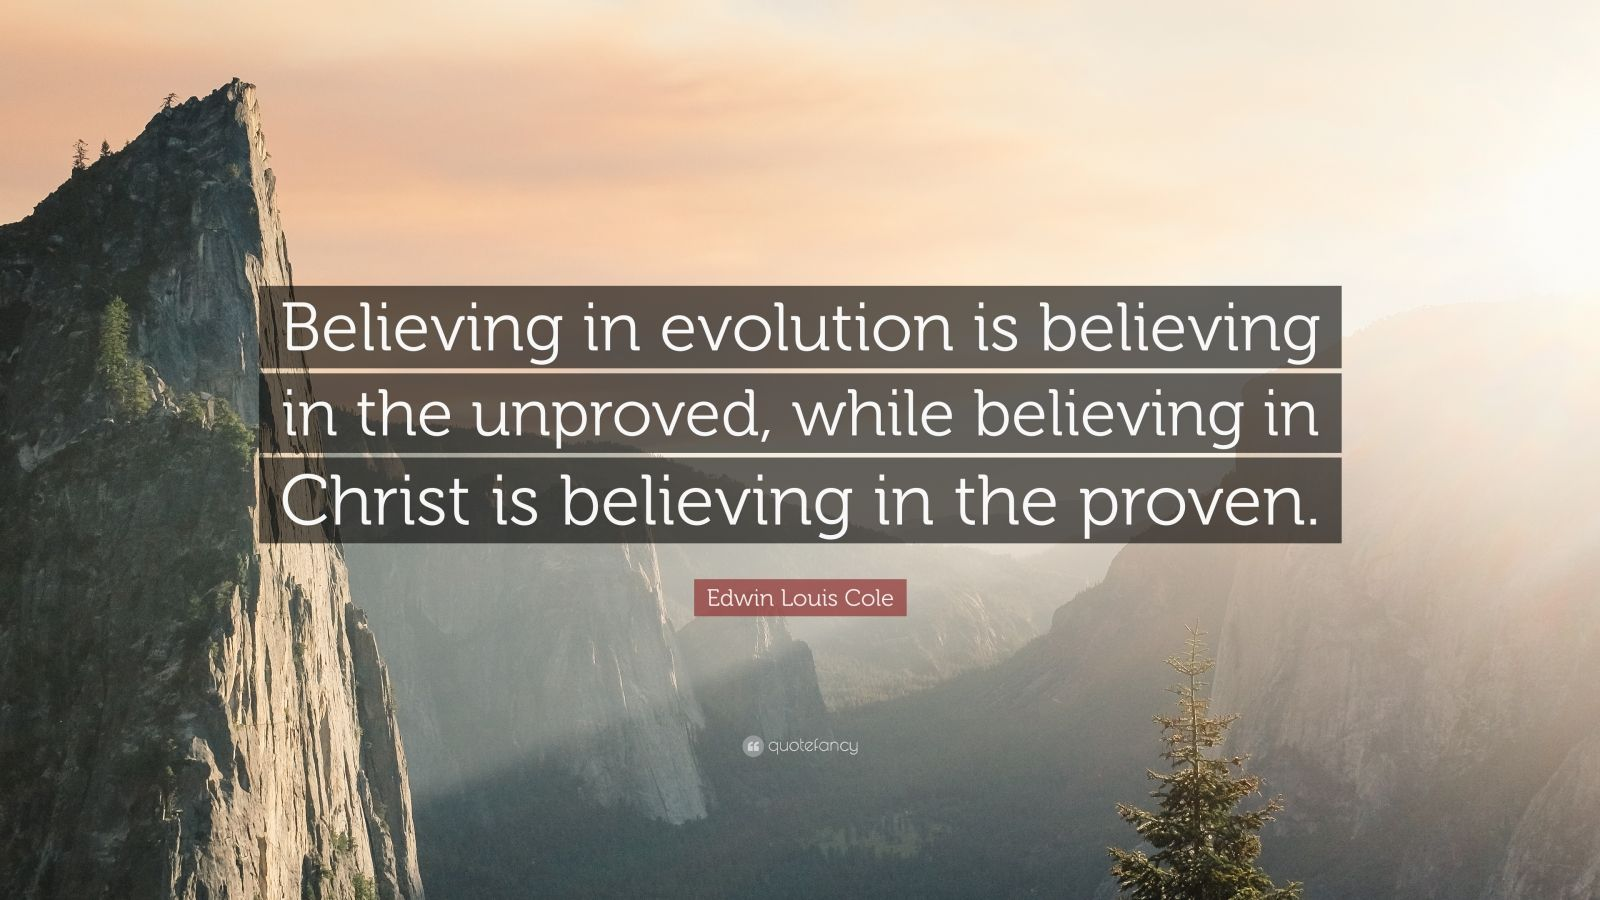 """Edwin Louis Cole Quote: """"Believing in evolution is believing in the unproved, while believing in Christ is believing in the proven."""""""